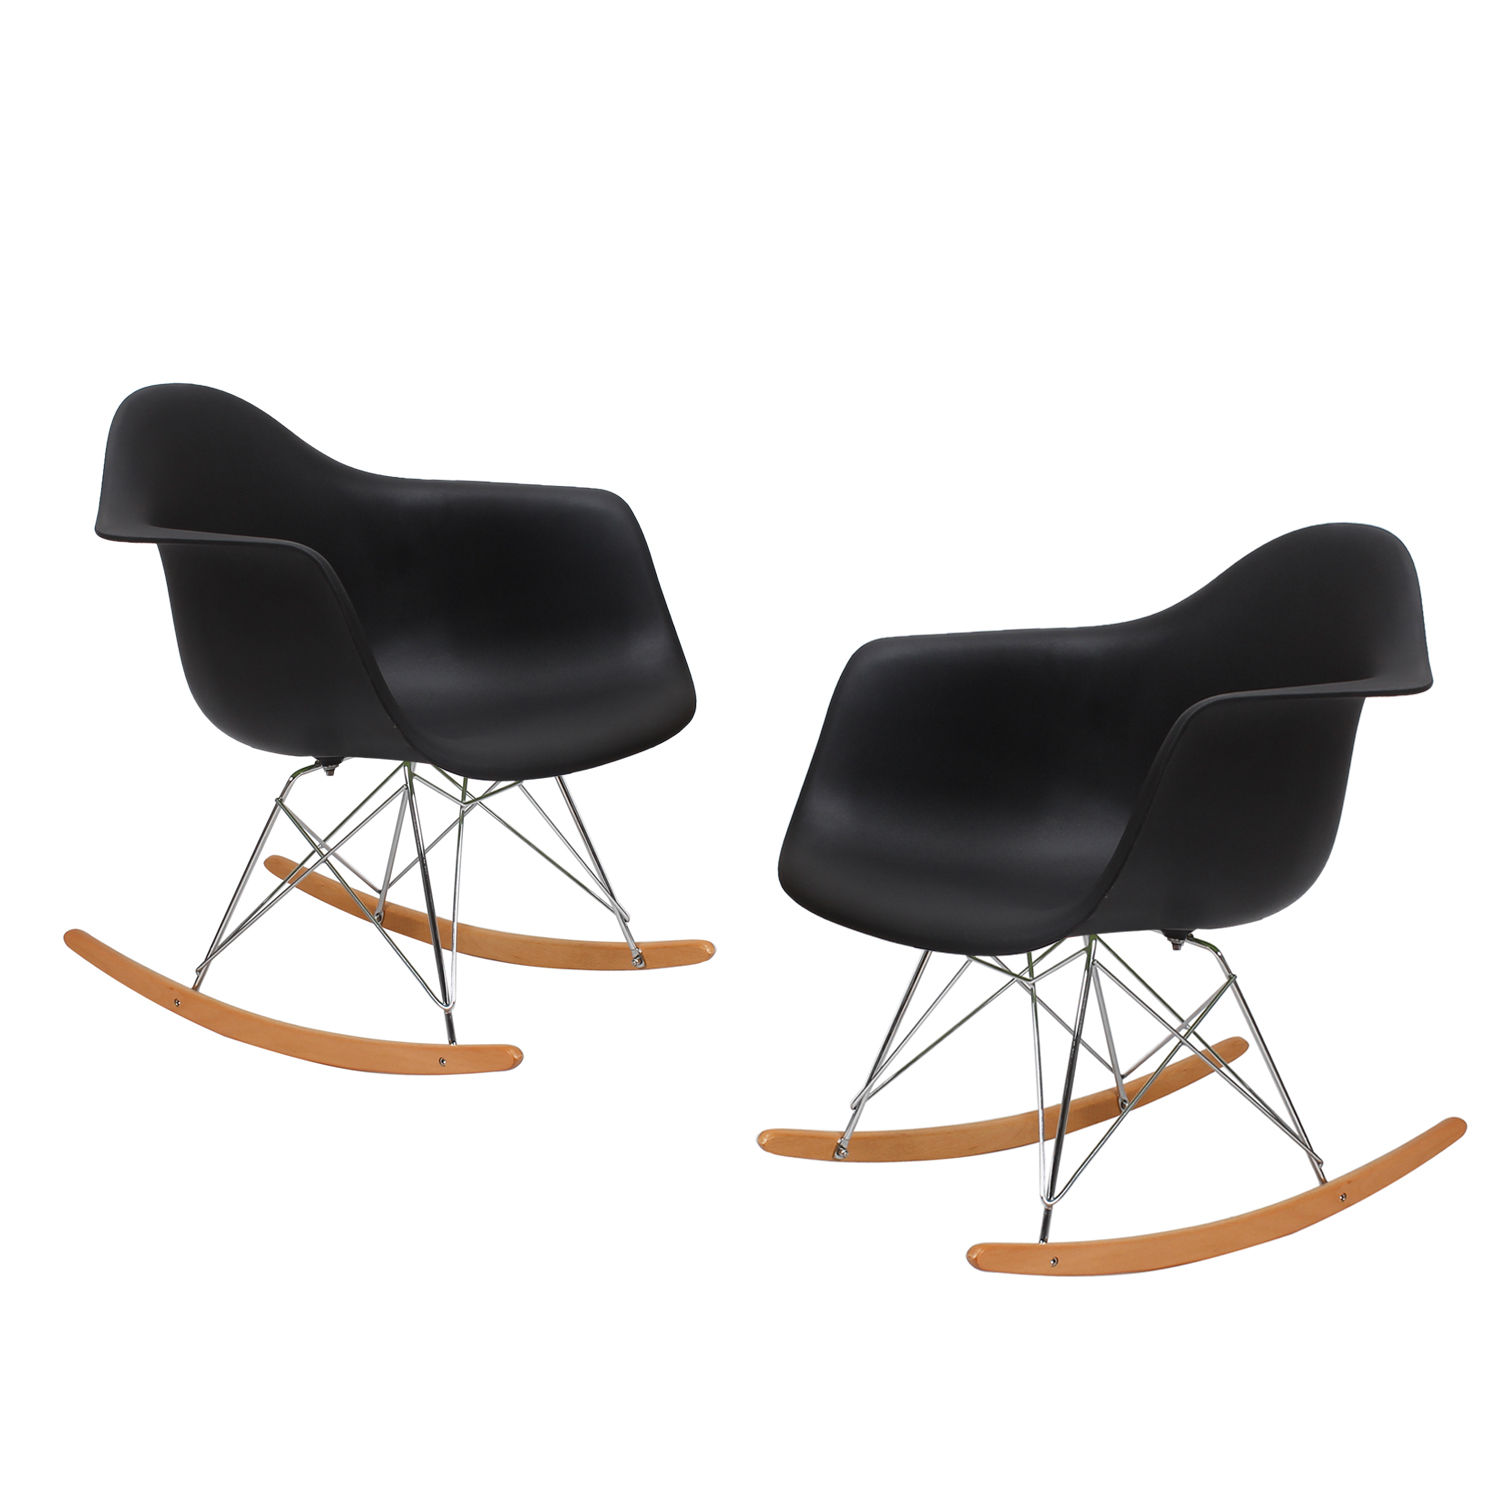 DecentHome Black Charles U0026 Ray Eames Modern Rocking Chairs / Armchairs With  Beech Wood Rocker   CH0195 2